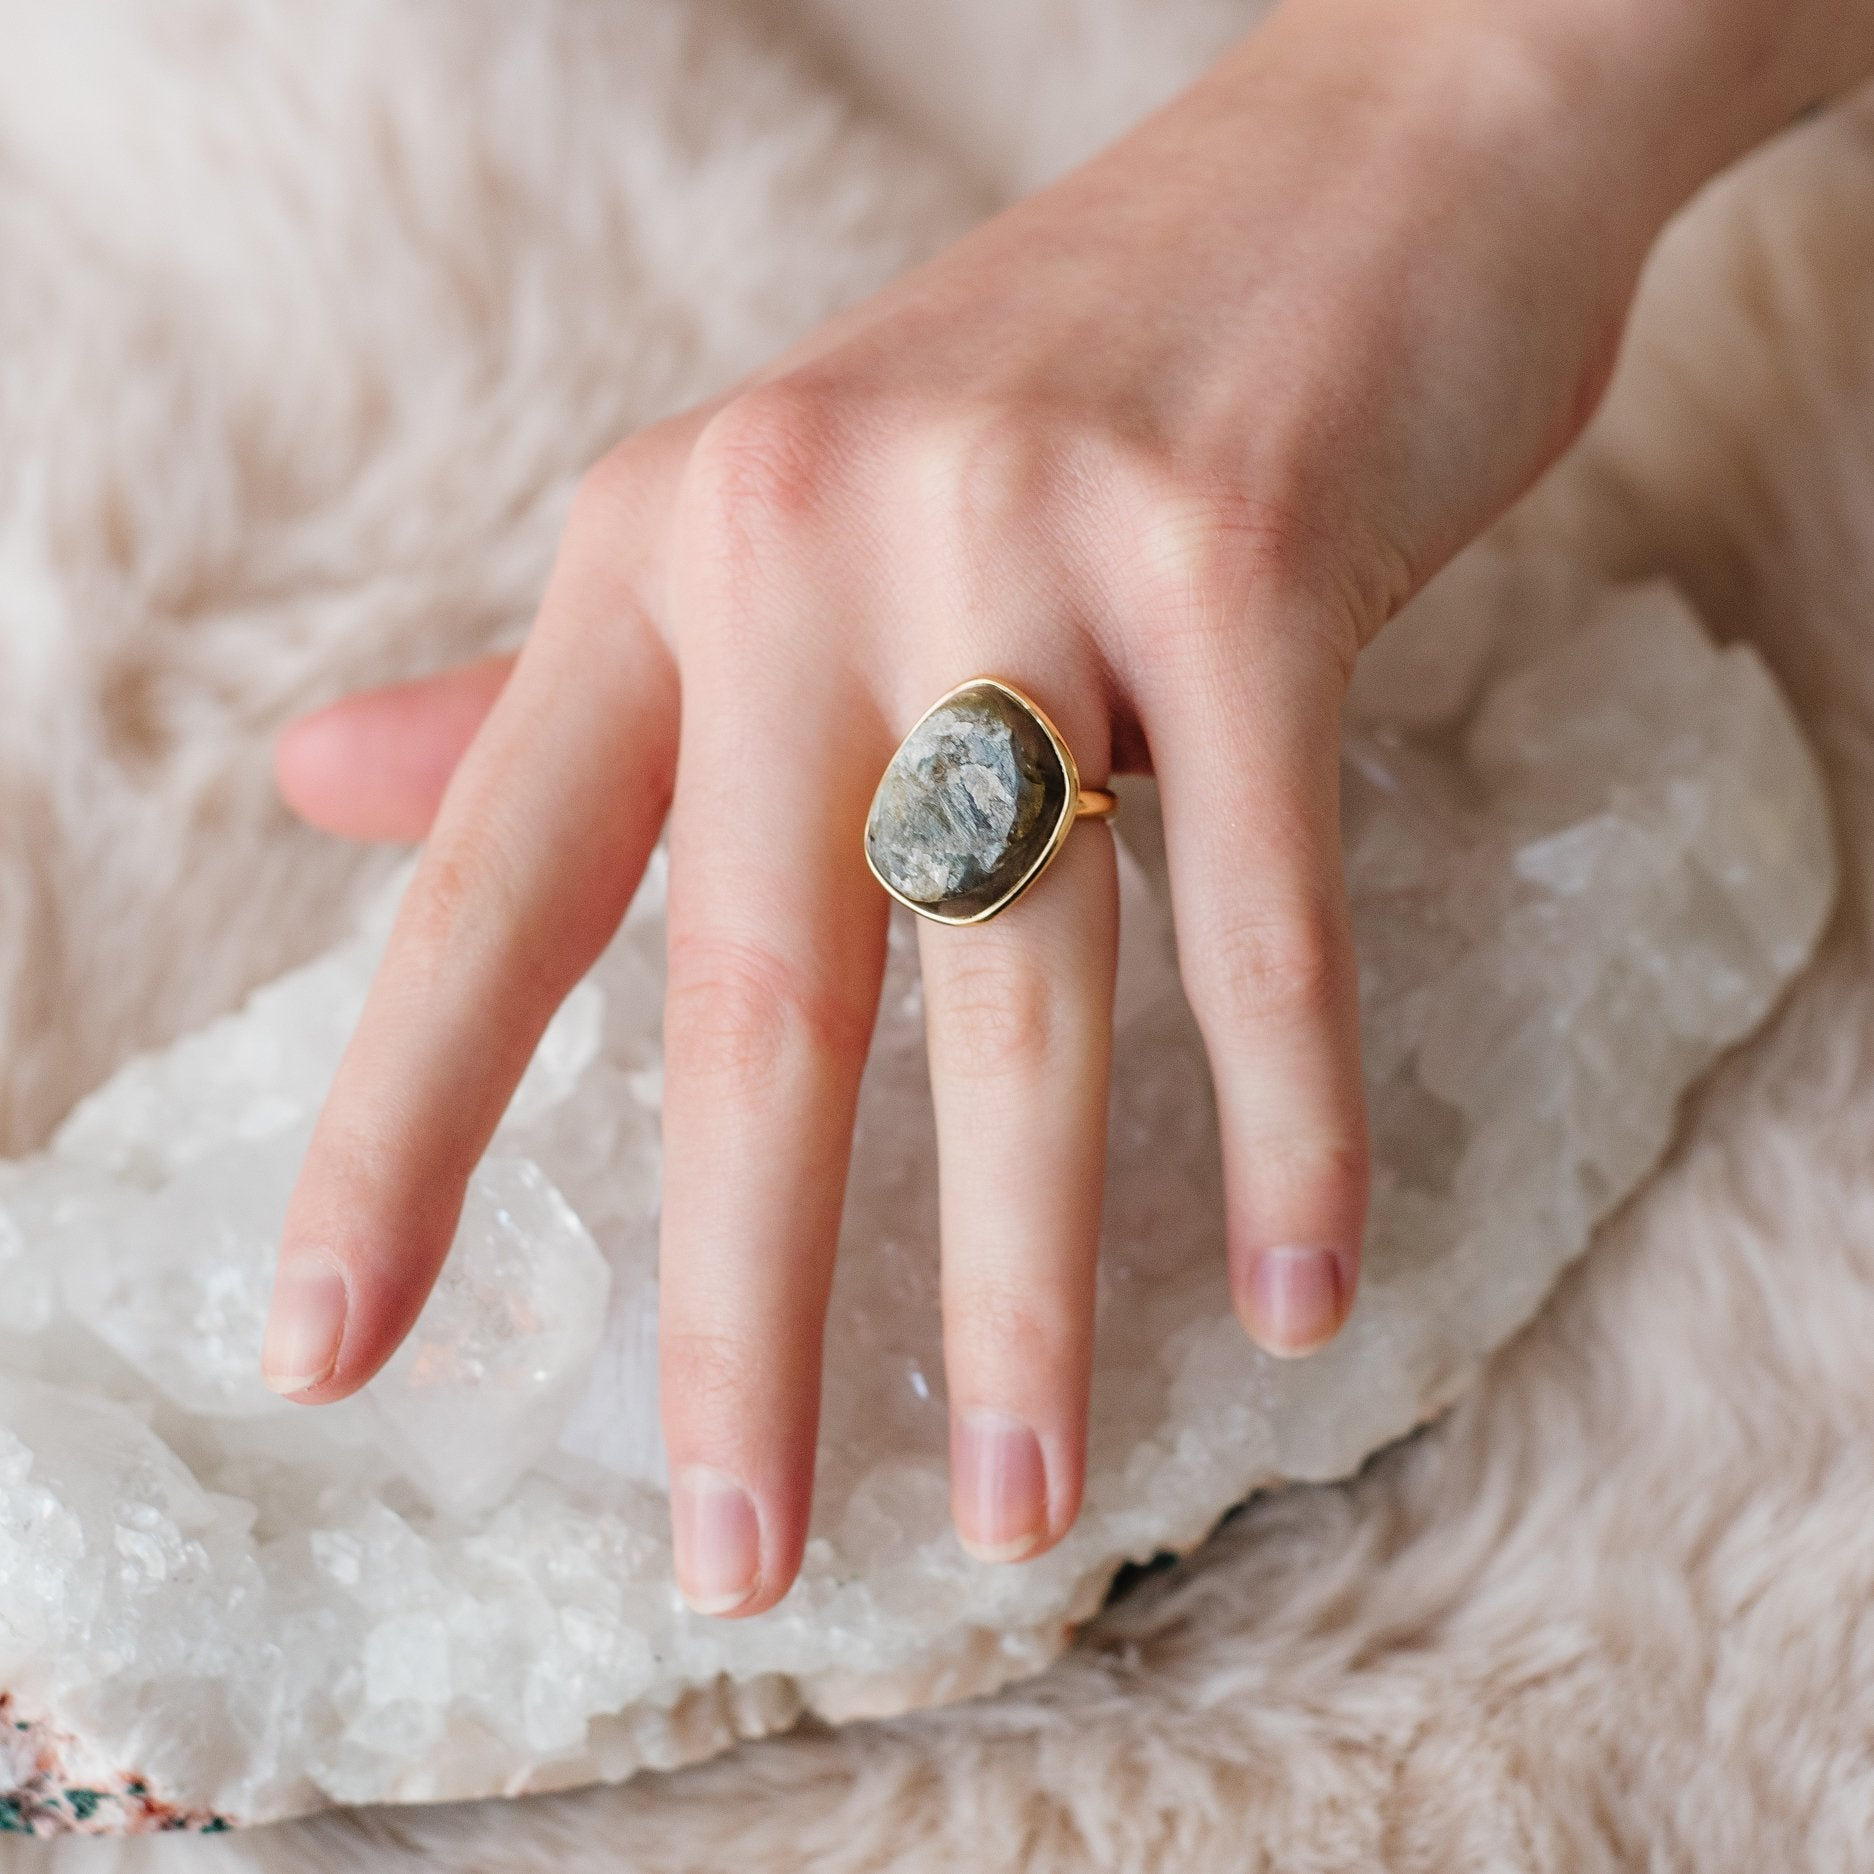 DARING RING - RAW LABRADORITE & GOLD - SO PRETTY CARA COTTER